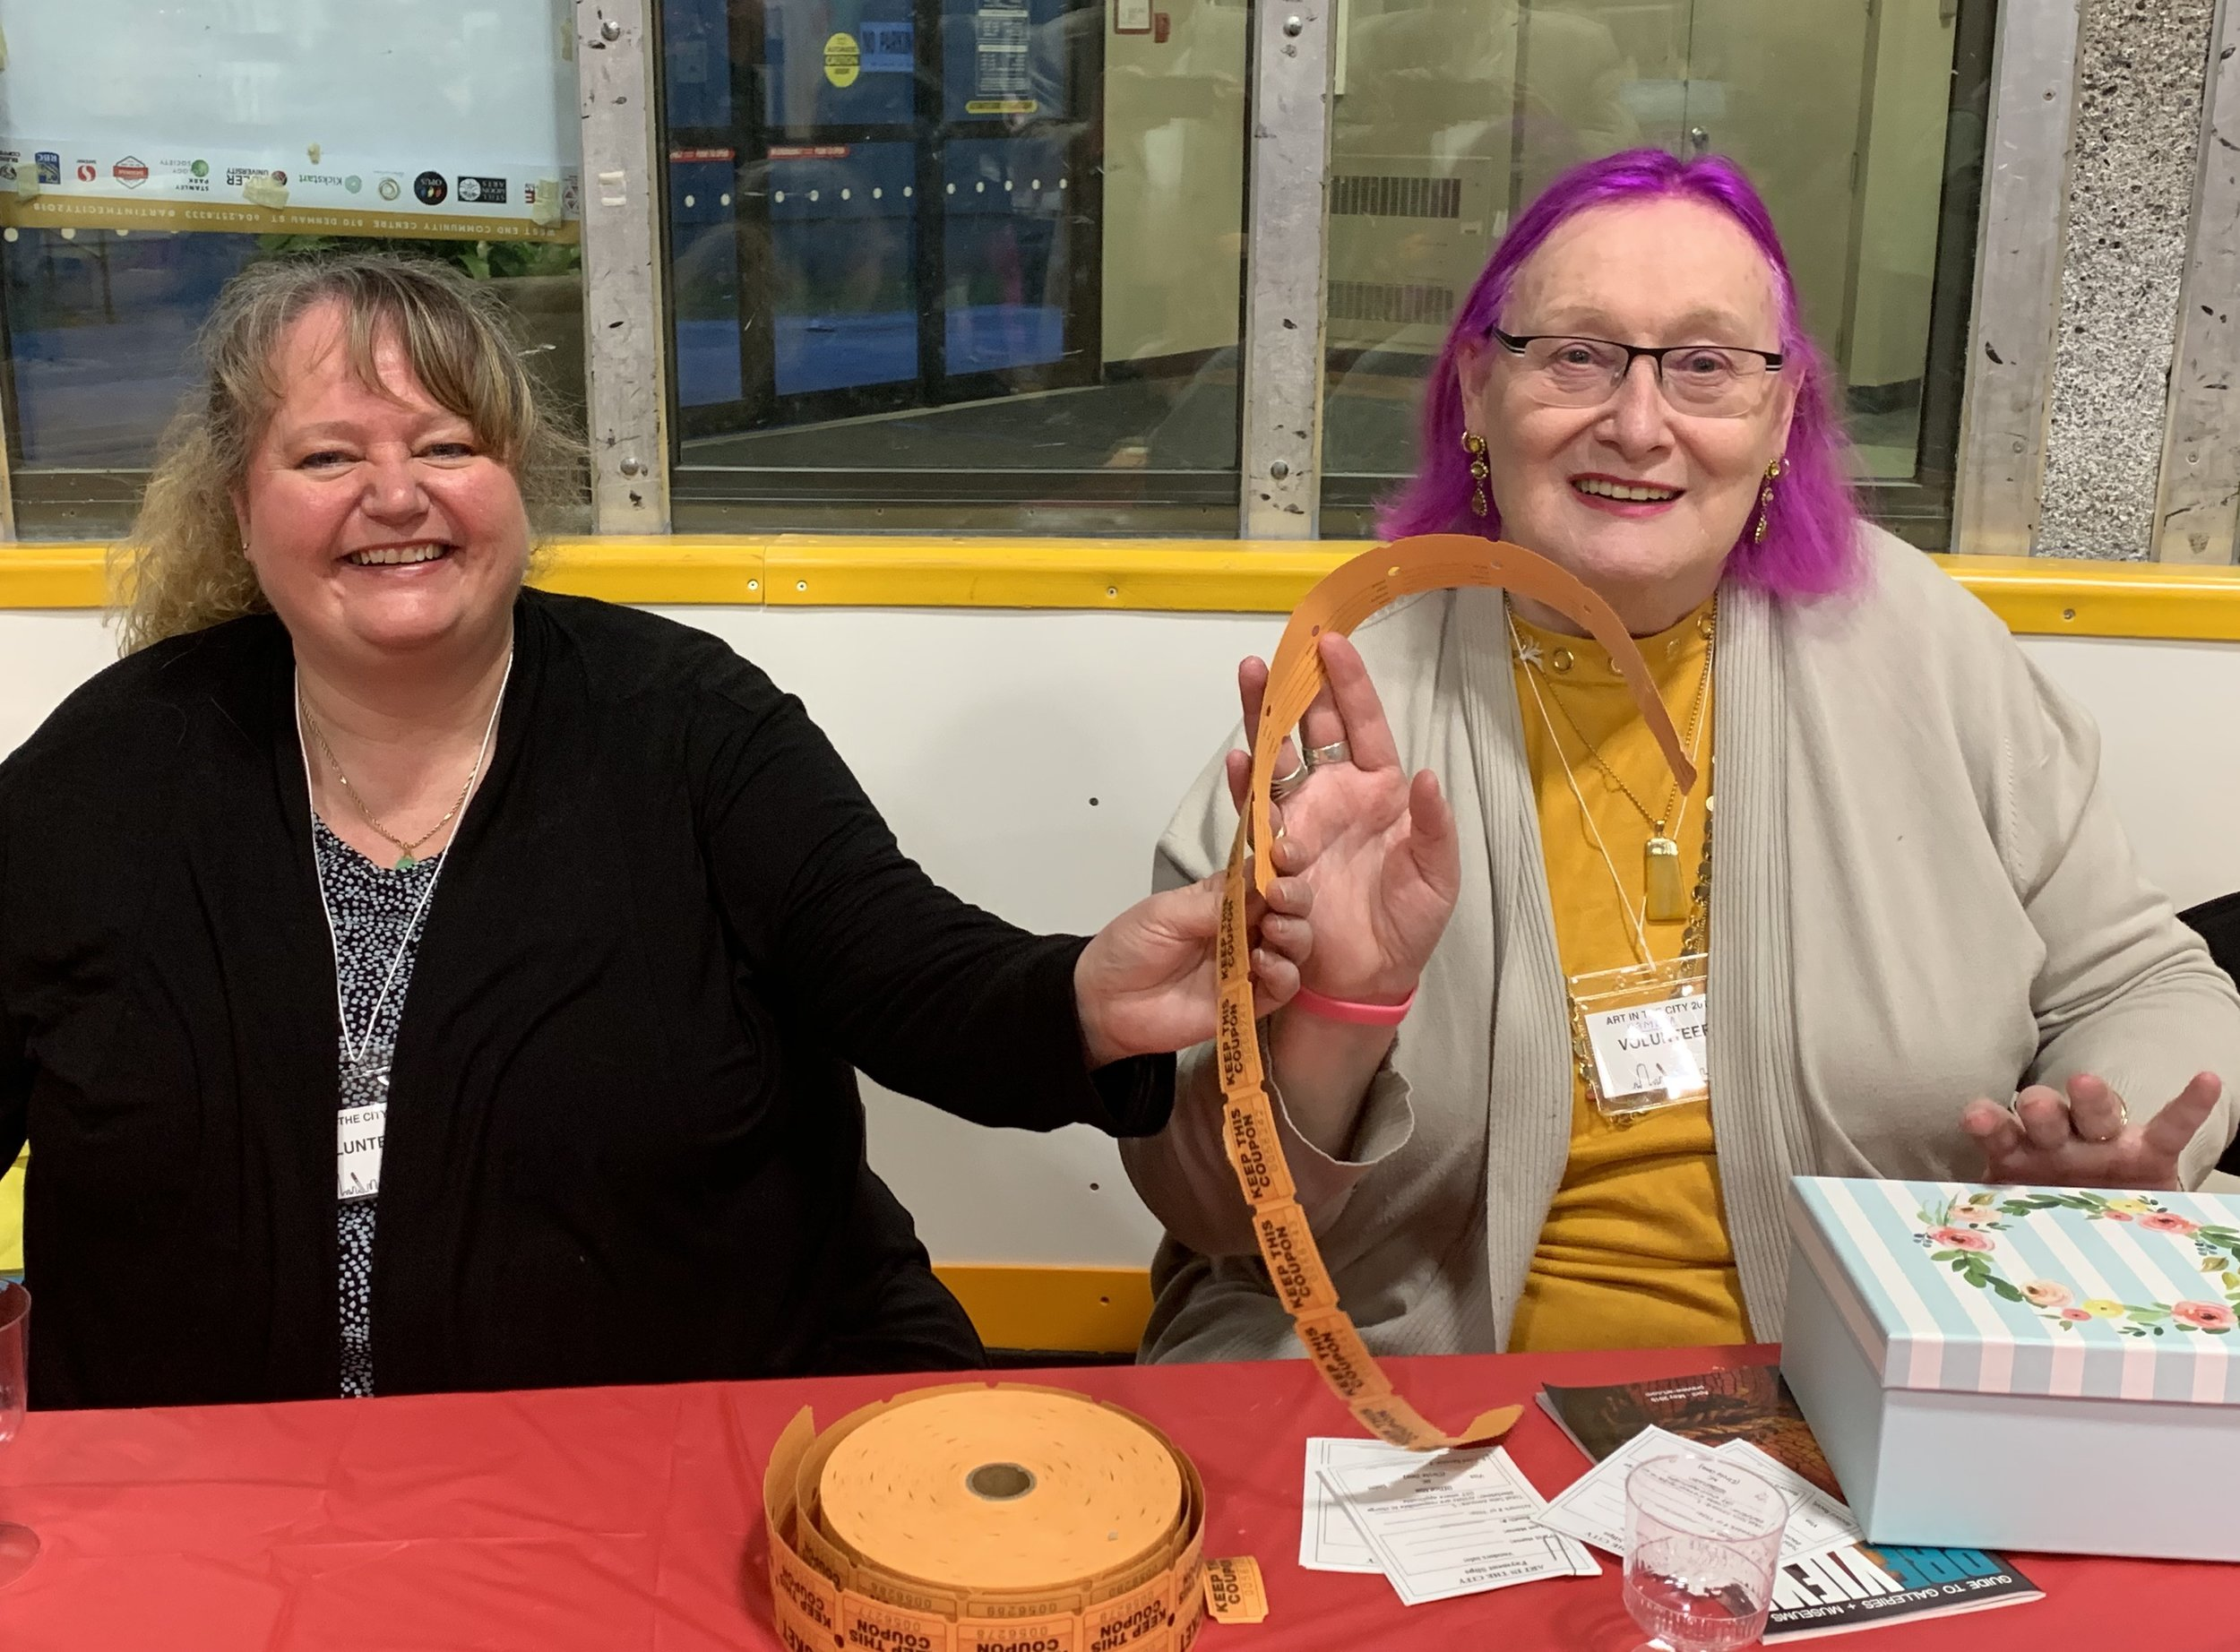 West End Community Centre business manager Debbie Coulson (left) and longtime volunteer and board member Pamela Leaman greeting guests at Art In The City … and sharing drink tickets!